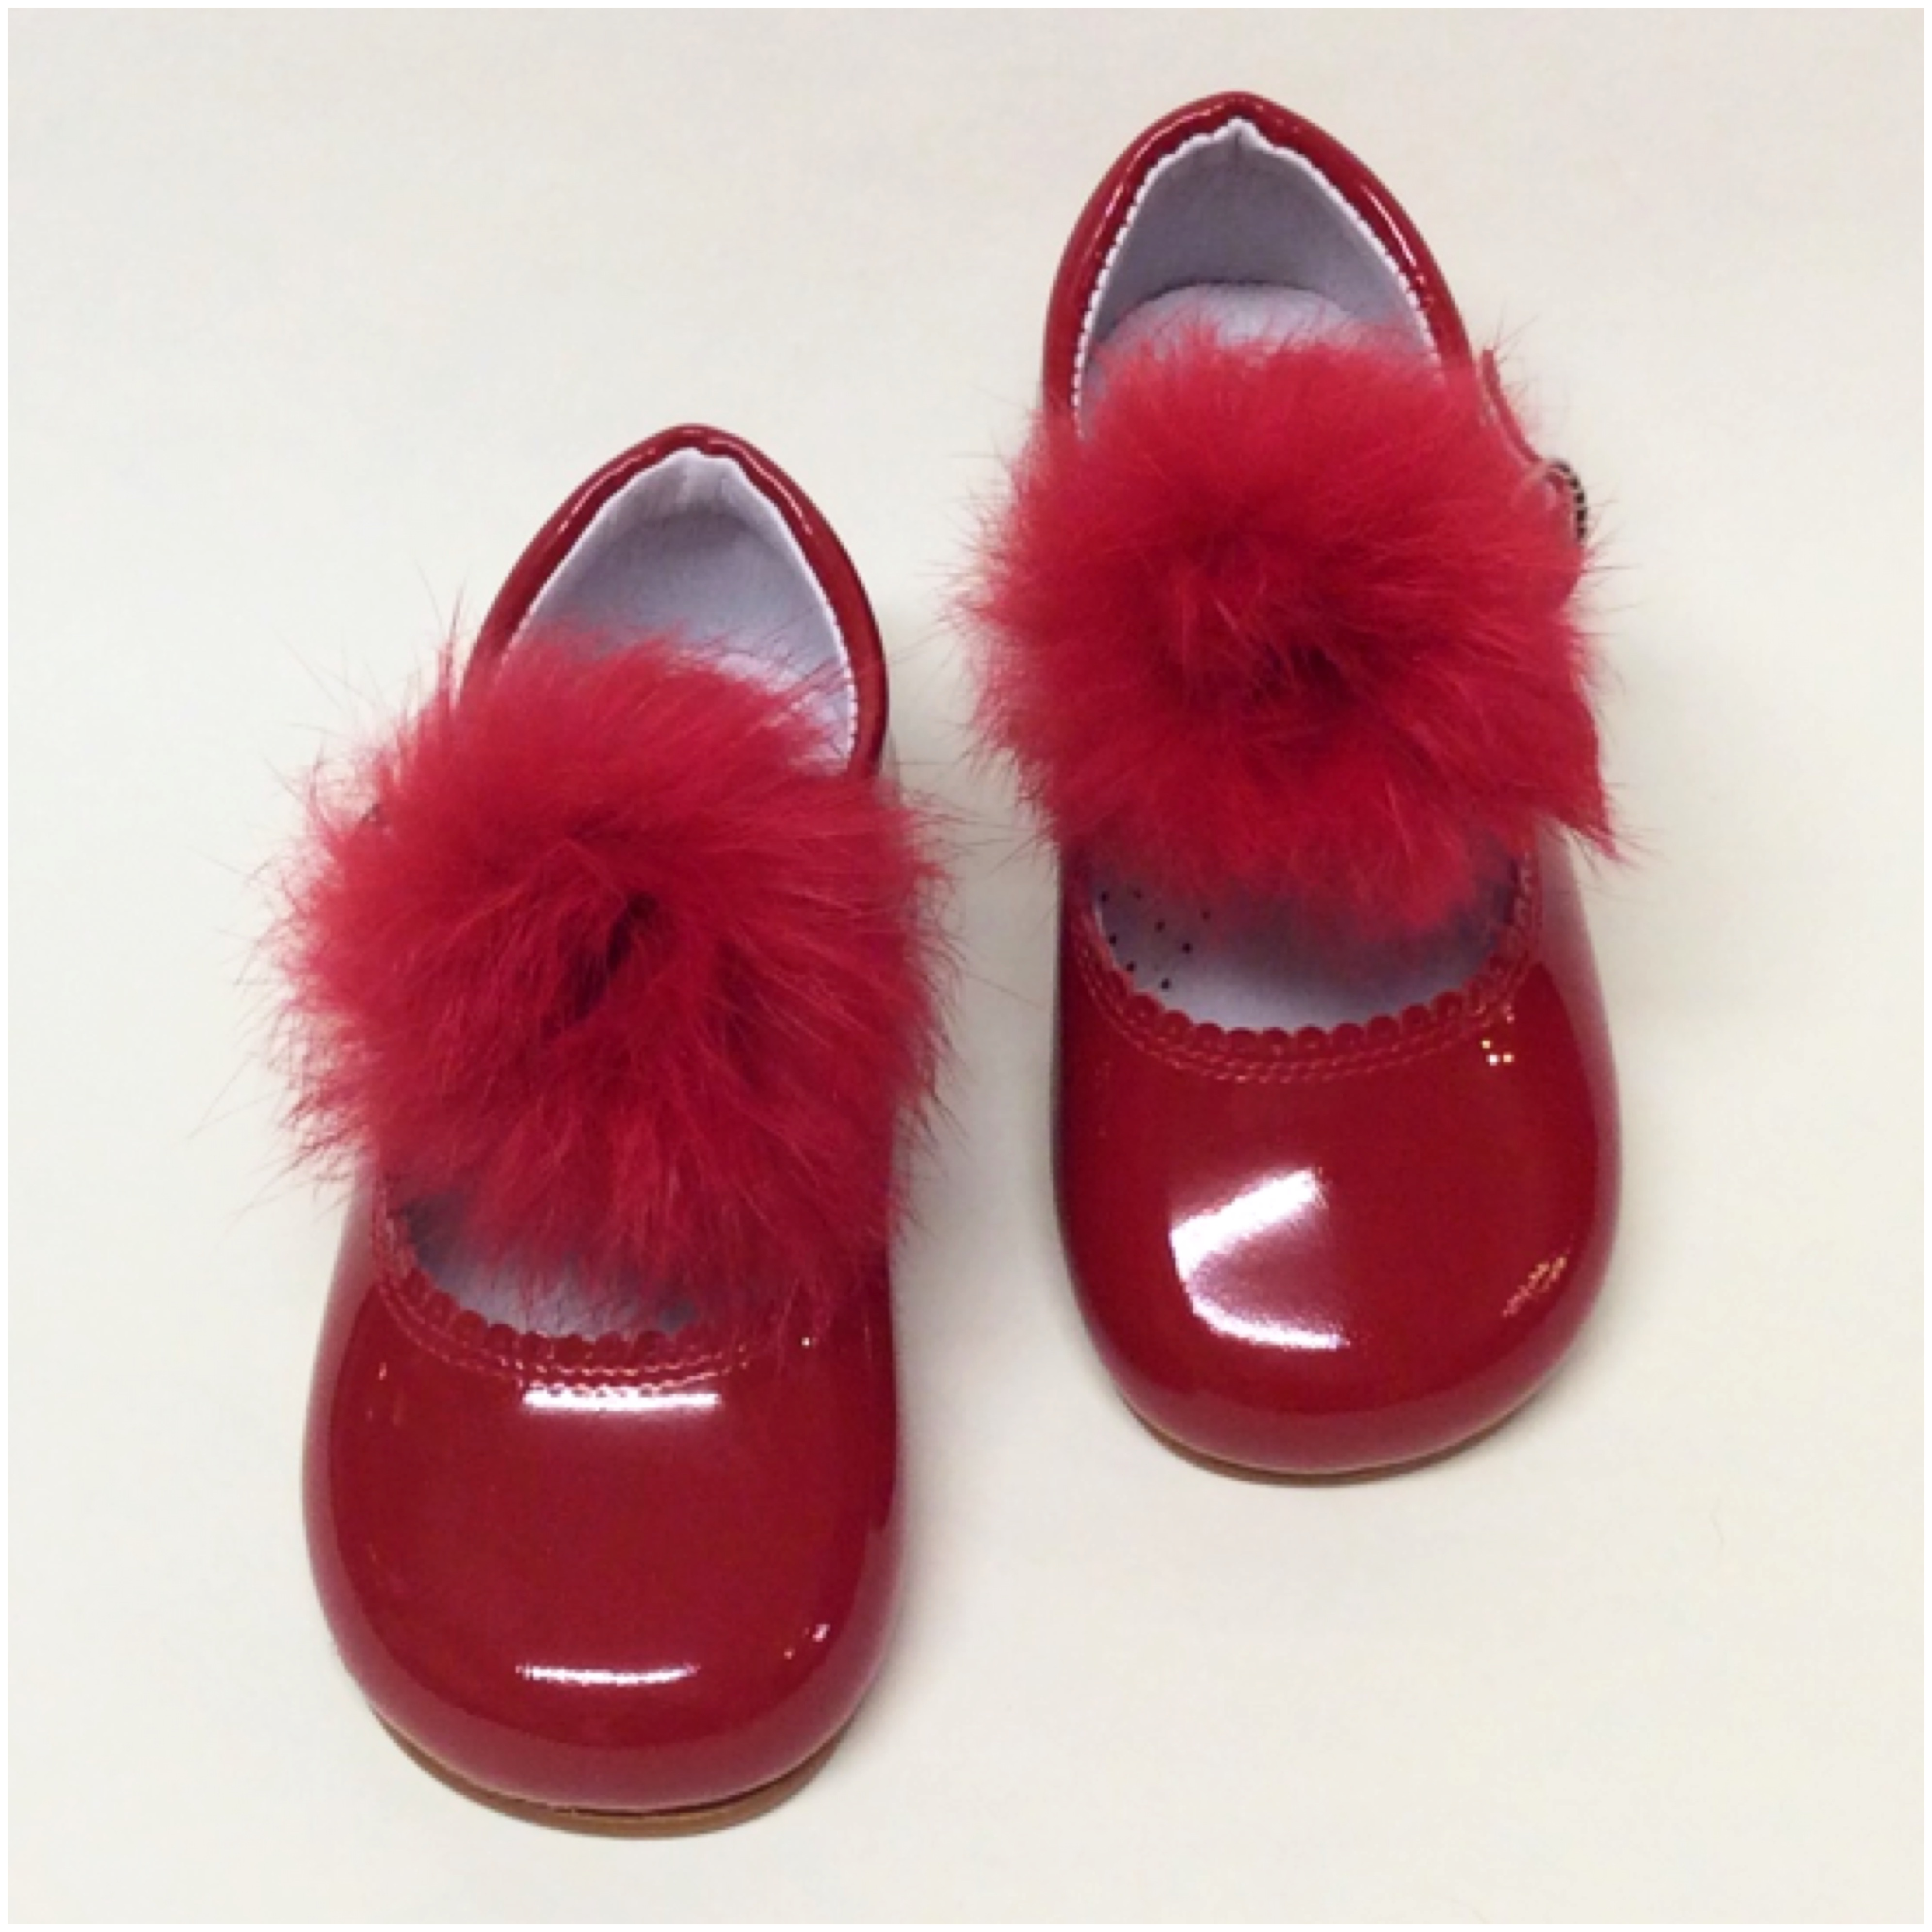 Bambi Maryjanes With Bow Or Fur, Red